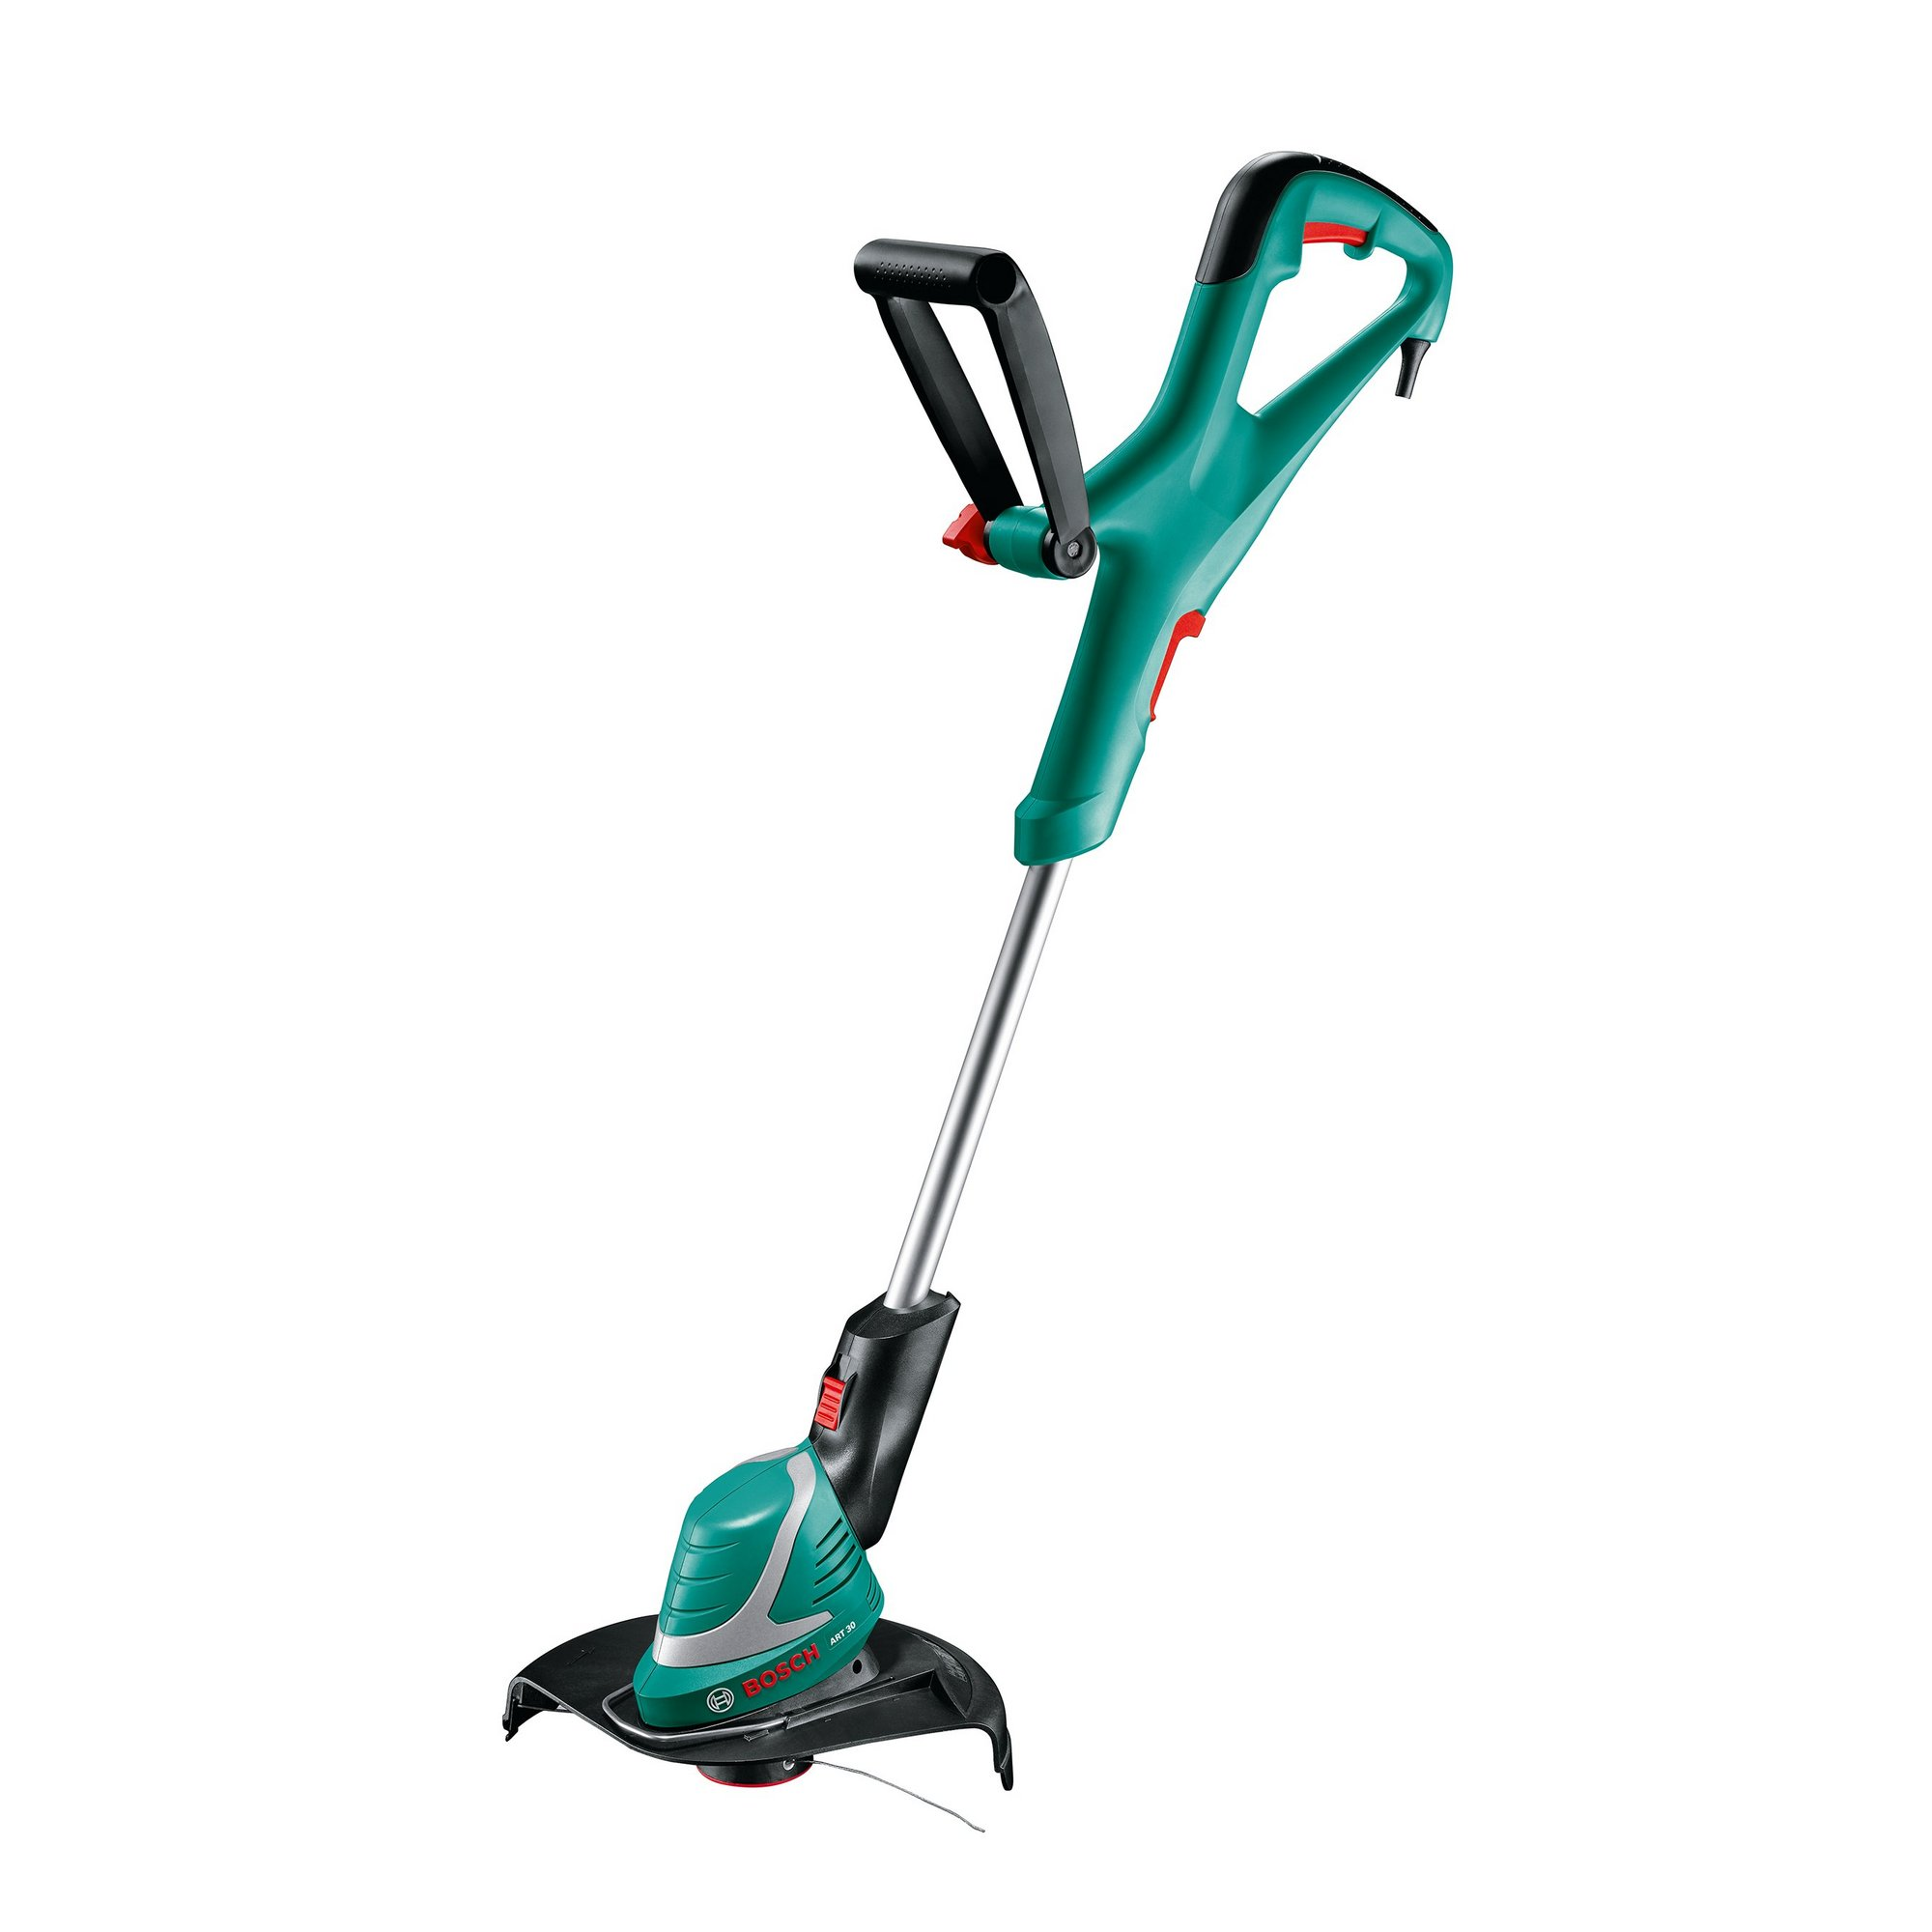 Image of Bosch ART 30 Electric Line Trimmer